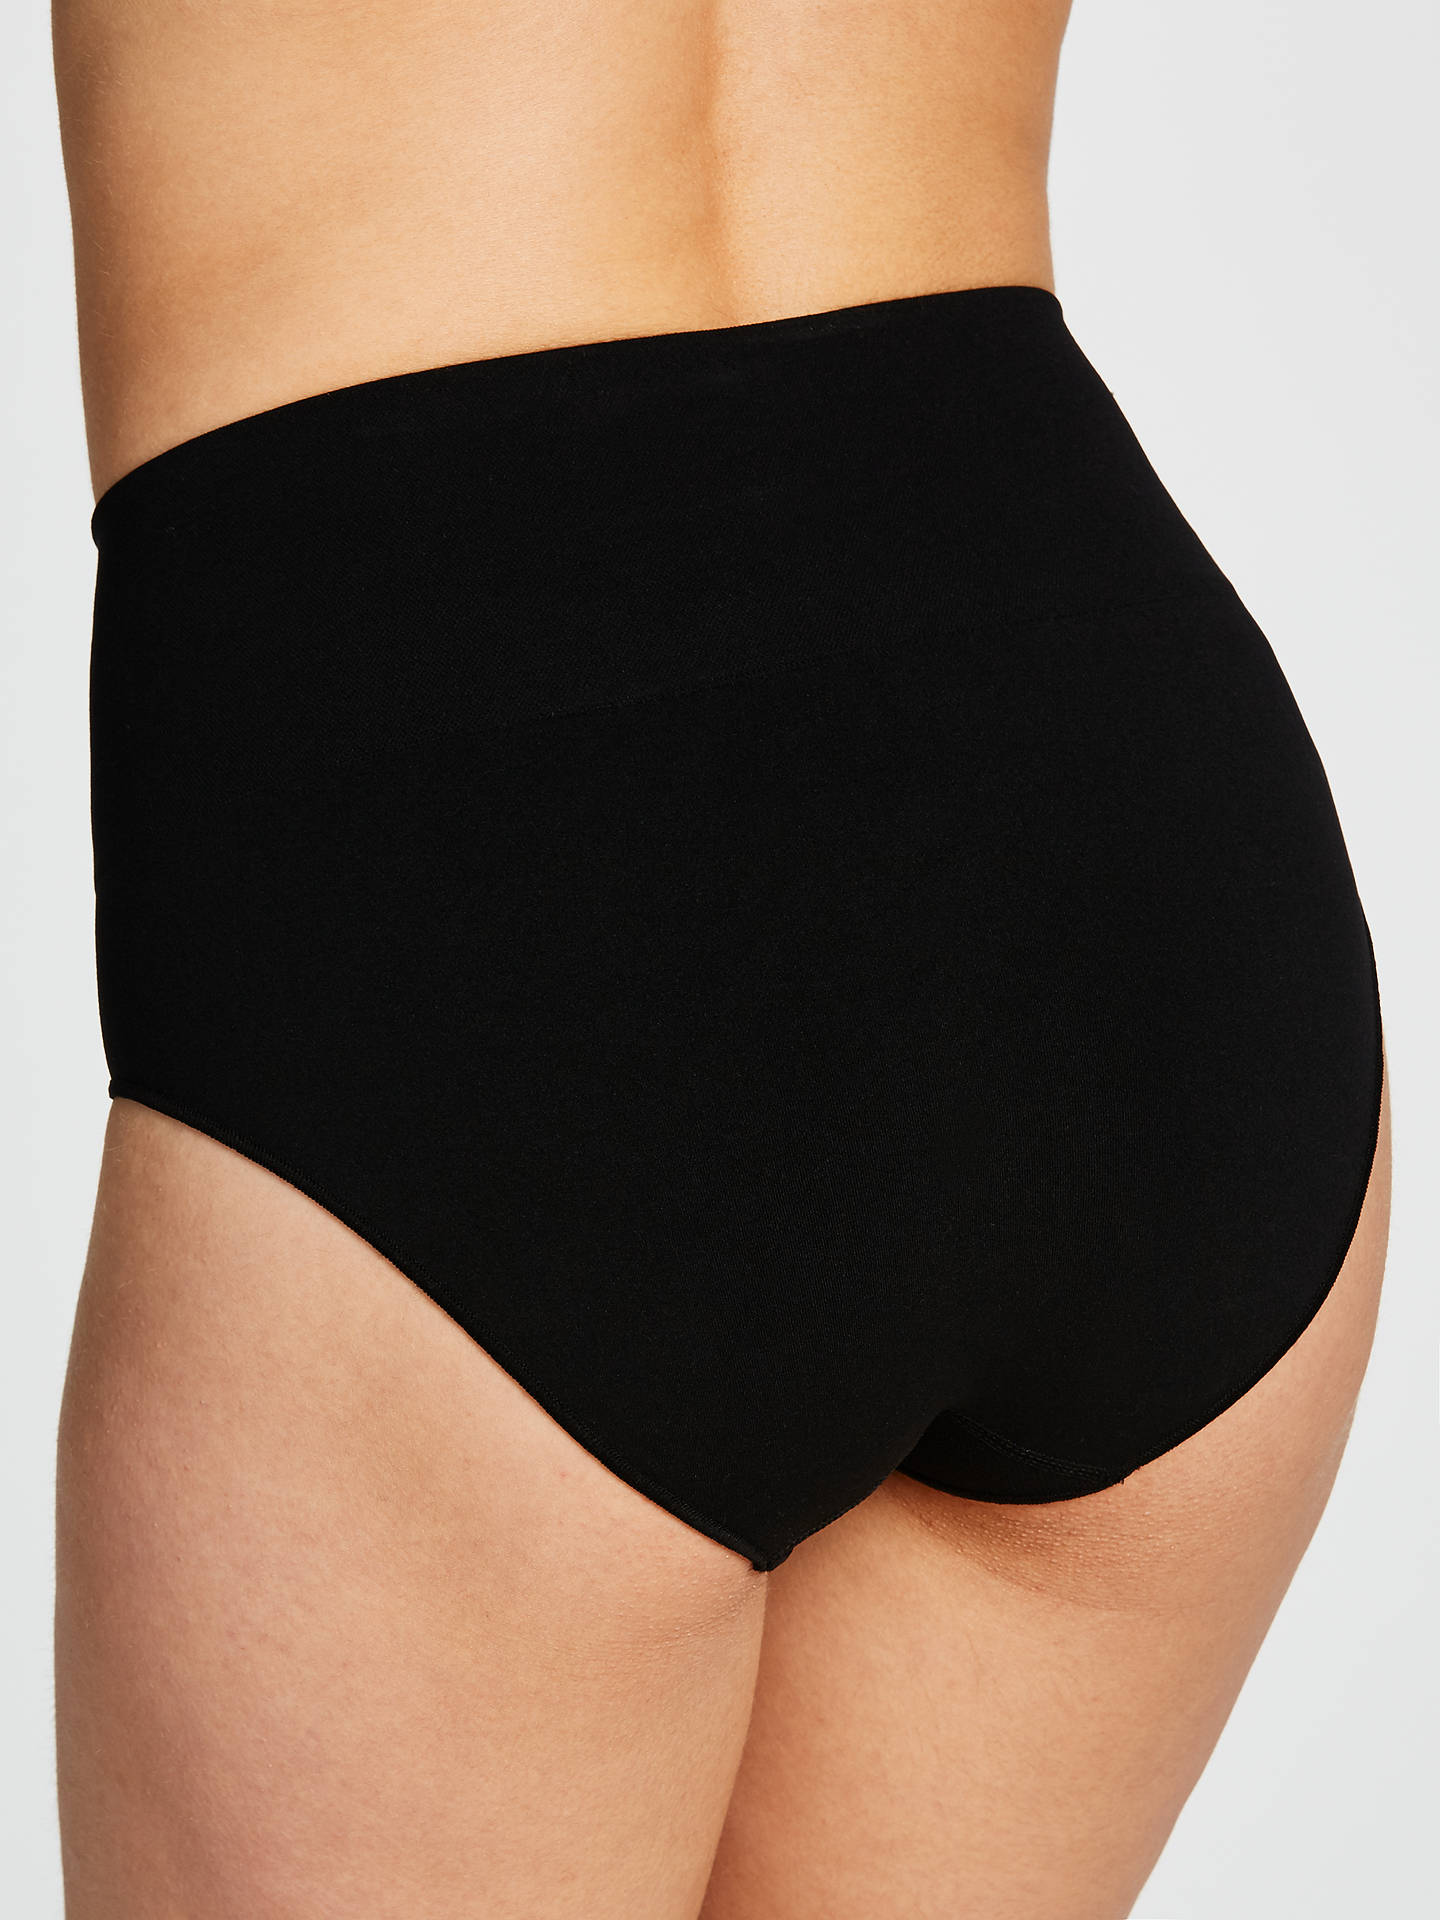 Buy John Lewis & Partners Everyday Seamfree Shaping Briefs, Black, 8-10 Online at johnlewis.com